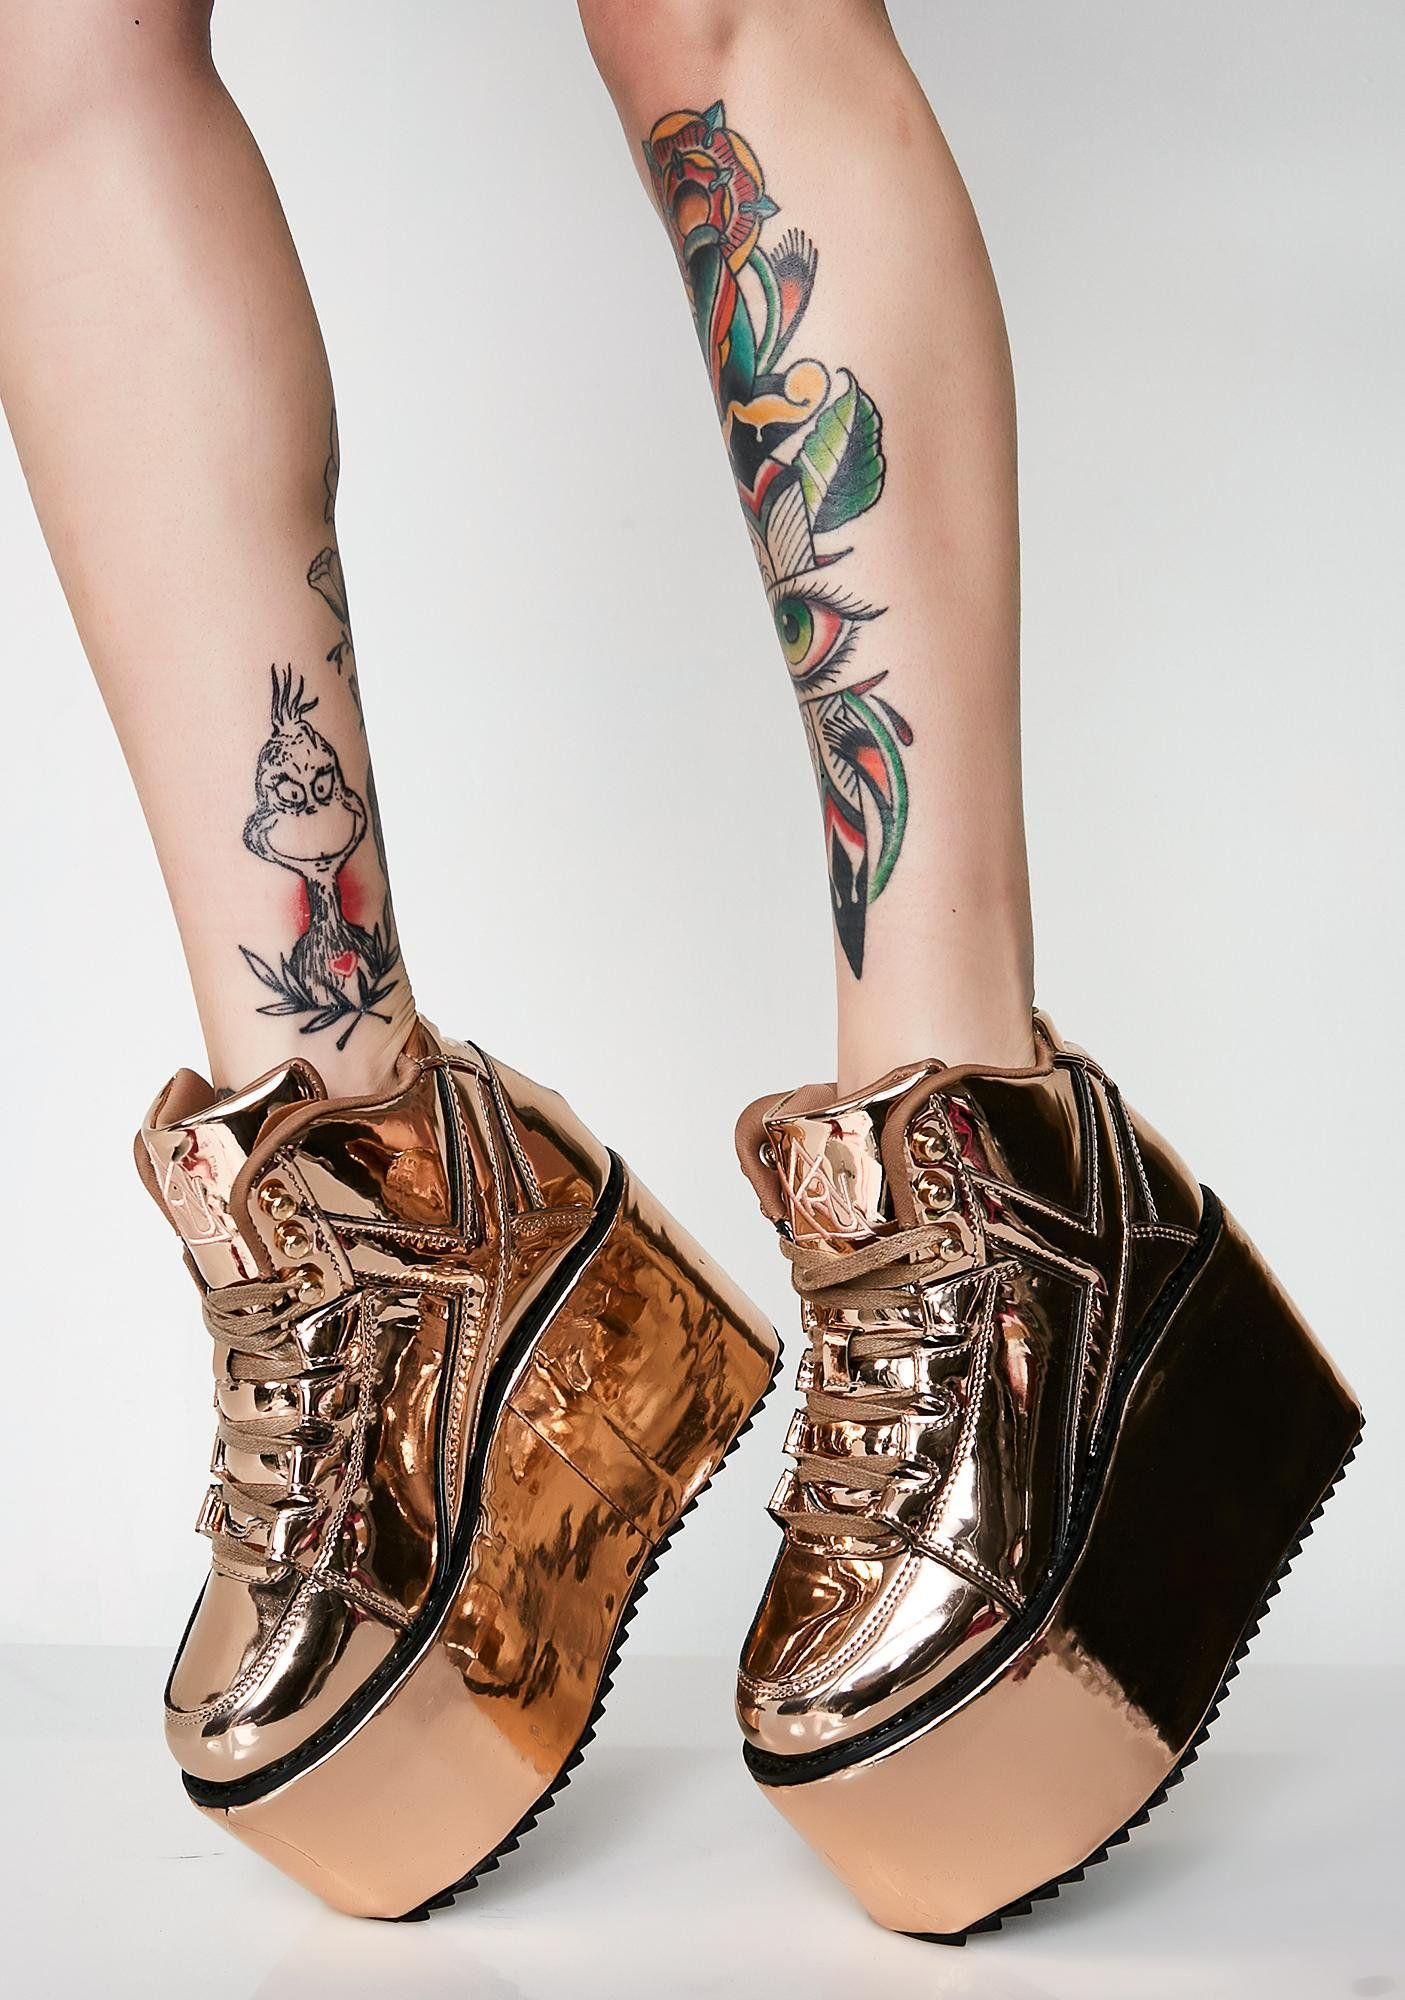 961b2ca148 Y.R.U. Fairest Of Them All Qozmo Platform Sneakers cuz you're the prettiest  princess. These metallic rose gold sneakers have thikk platform soles and  ...